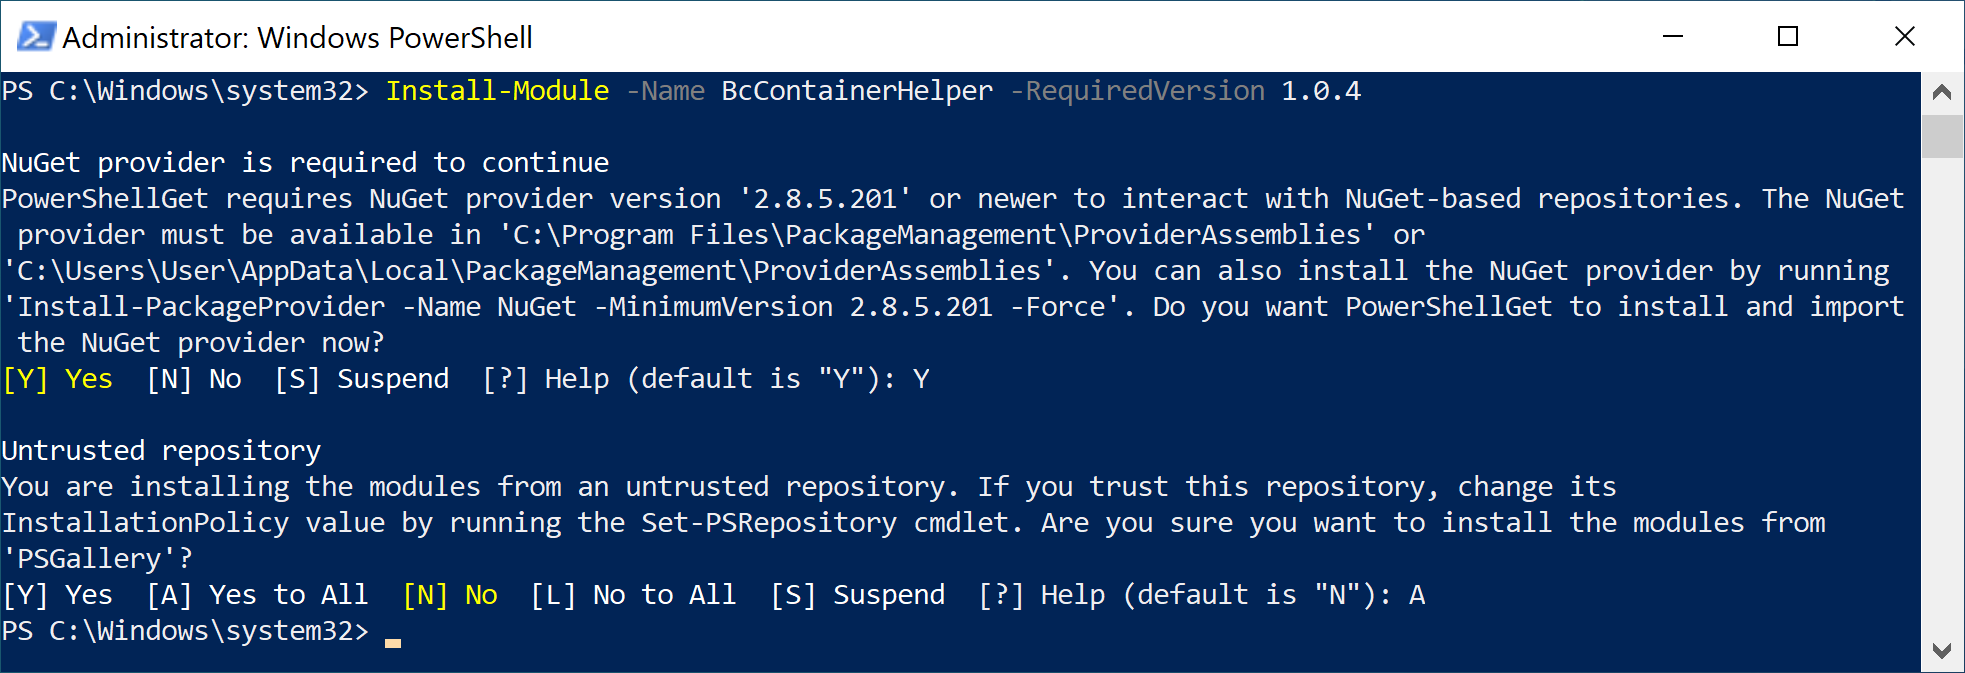 BC Container Helper installation output